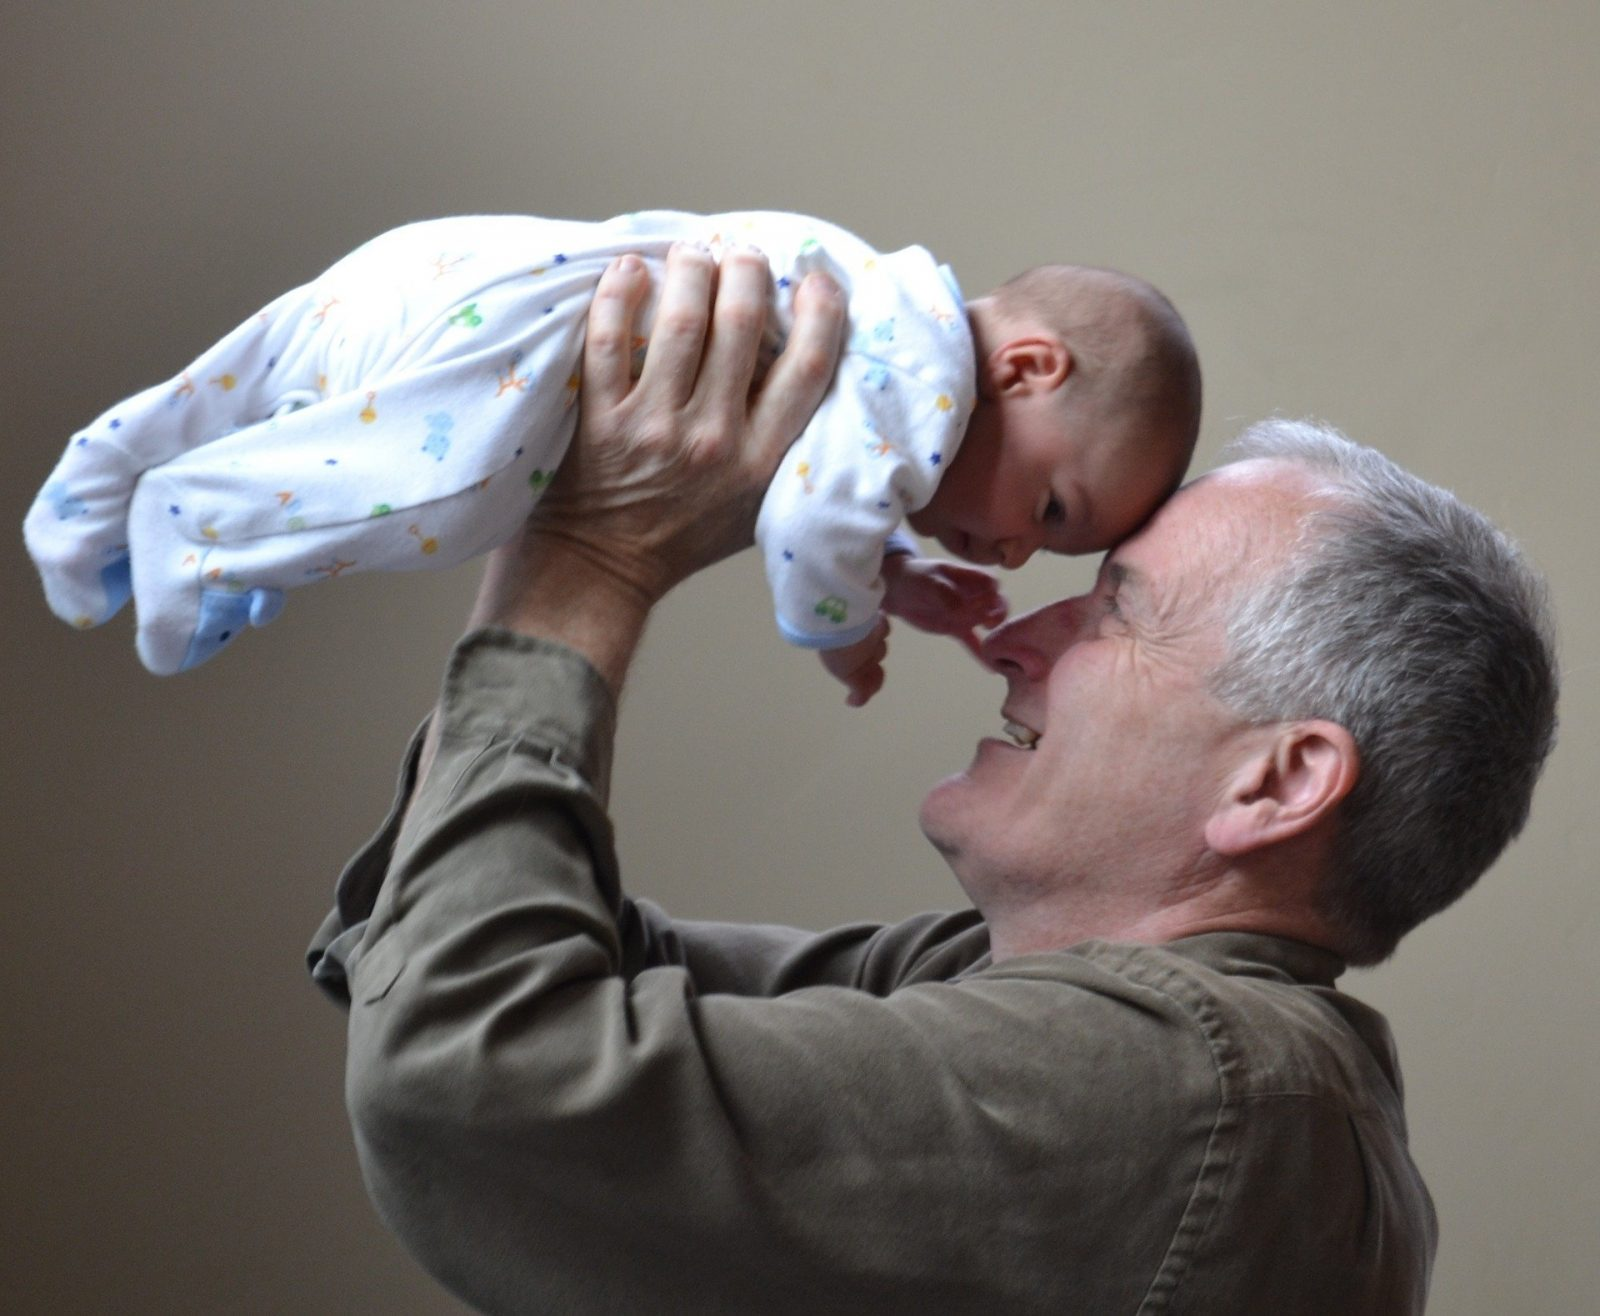 How to emotionally prepare for parenthood?, grandfather 1434575 1920 1600x1316%, daily-dad, expecting, 0-1%